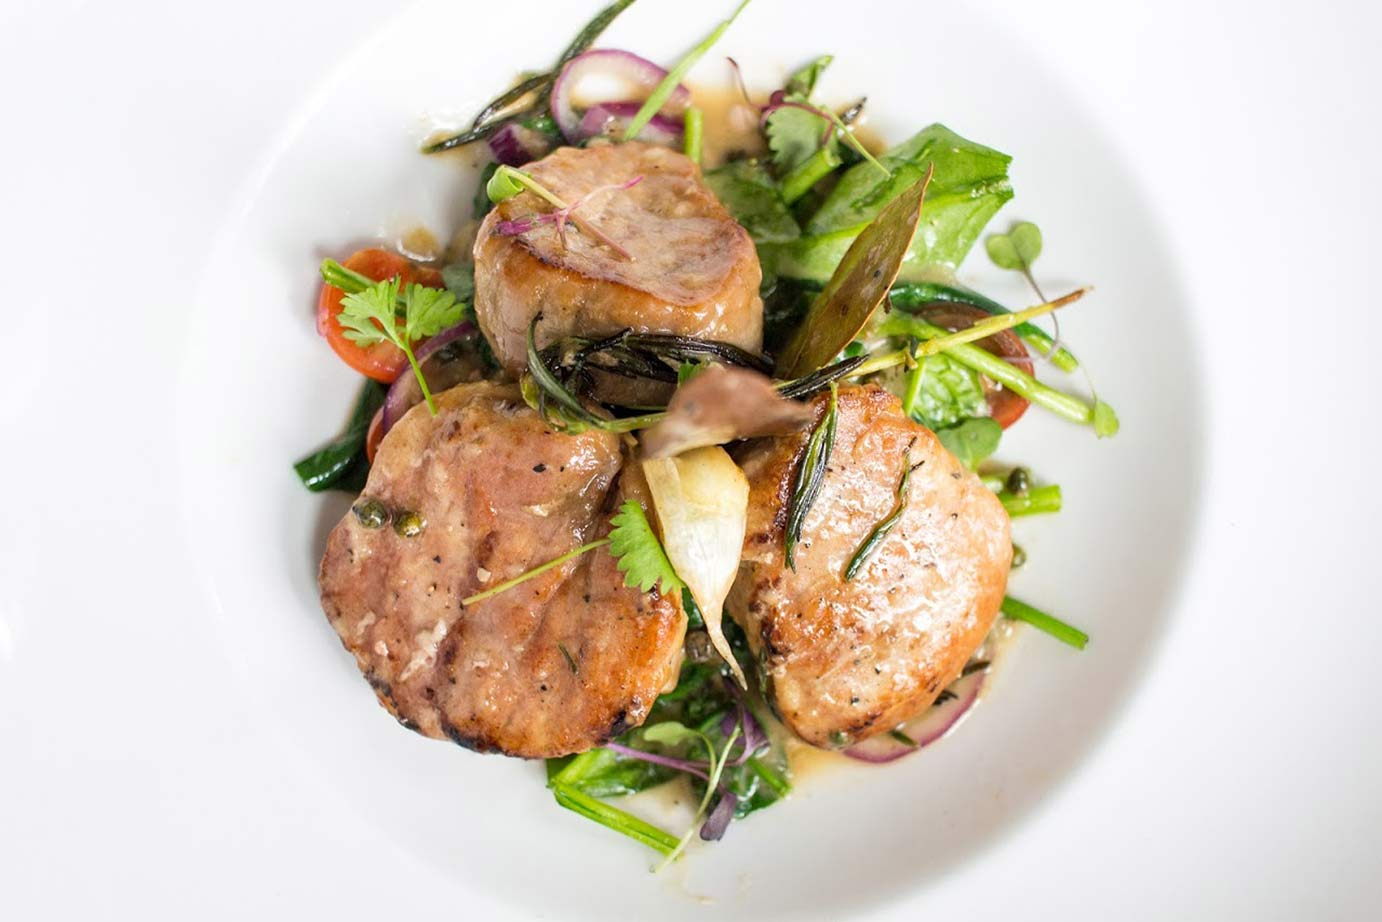 photo of pork chops with vegetable meal